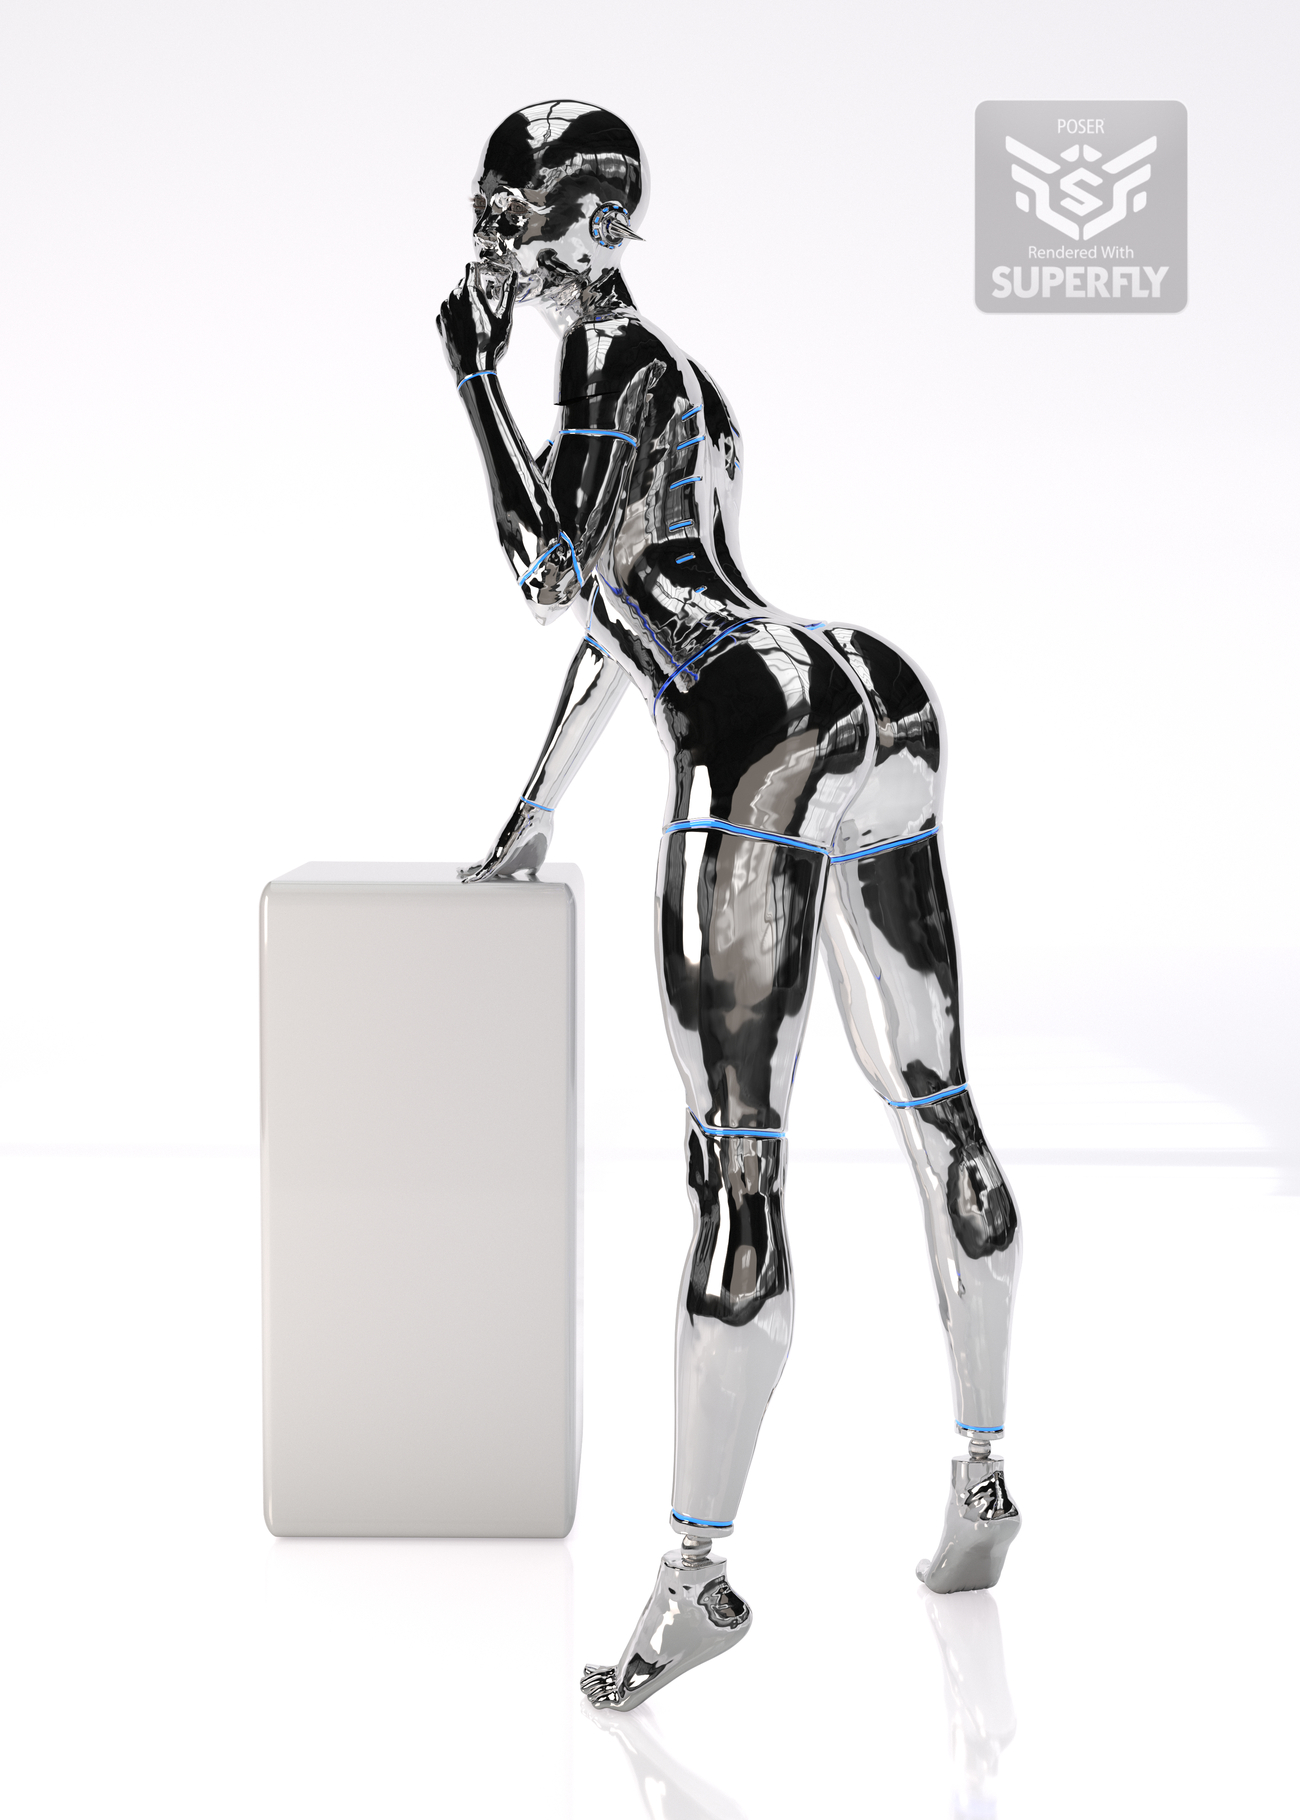 Sexy Robot 02 by NobbyC